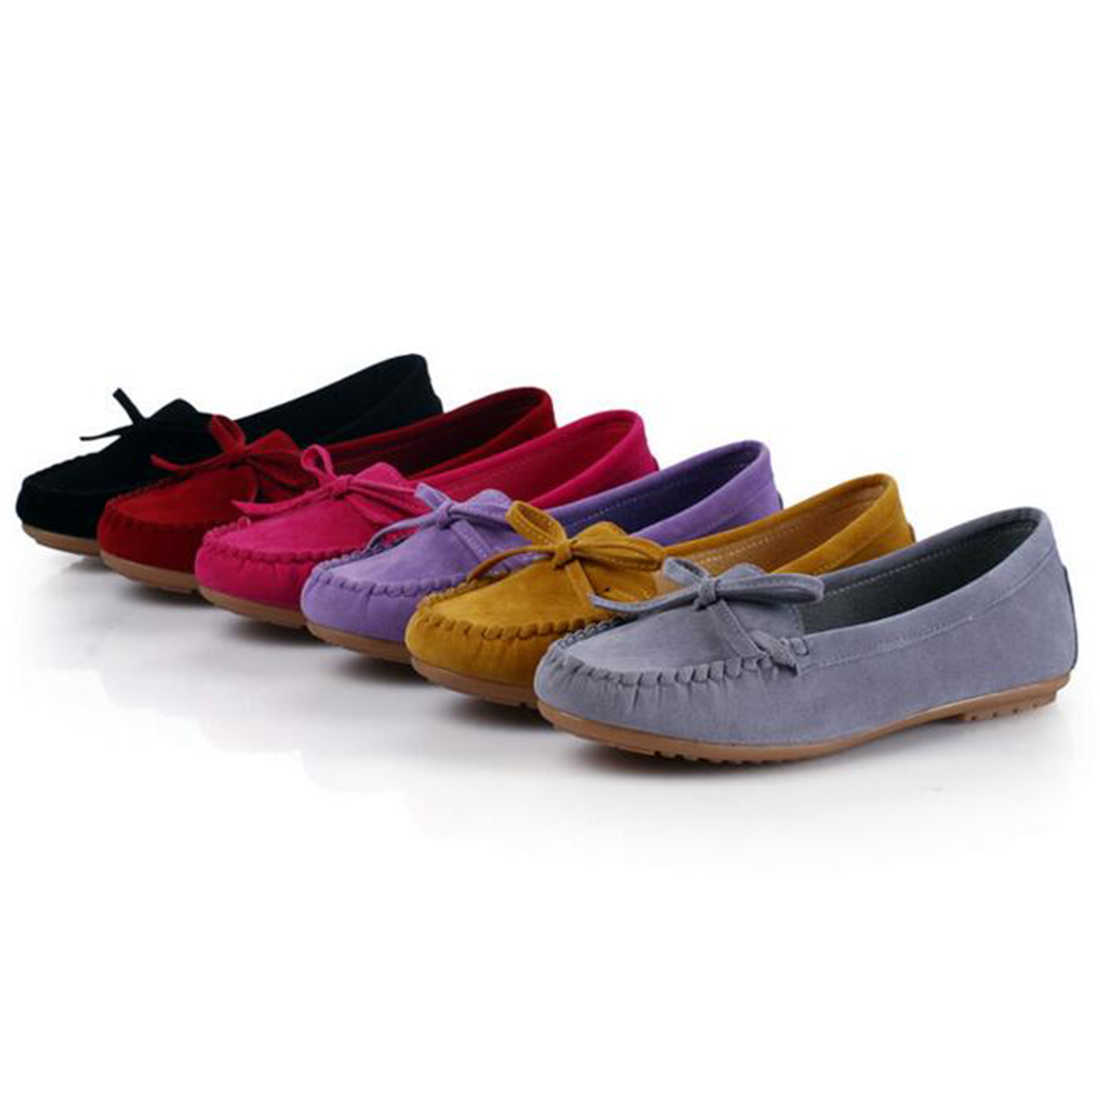 c91cf79938c Shoes women 2018 Moccasin Suede Hot sale Flats Shoe Fashion Casual Slip On  Soft Loafers Spring